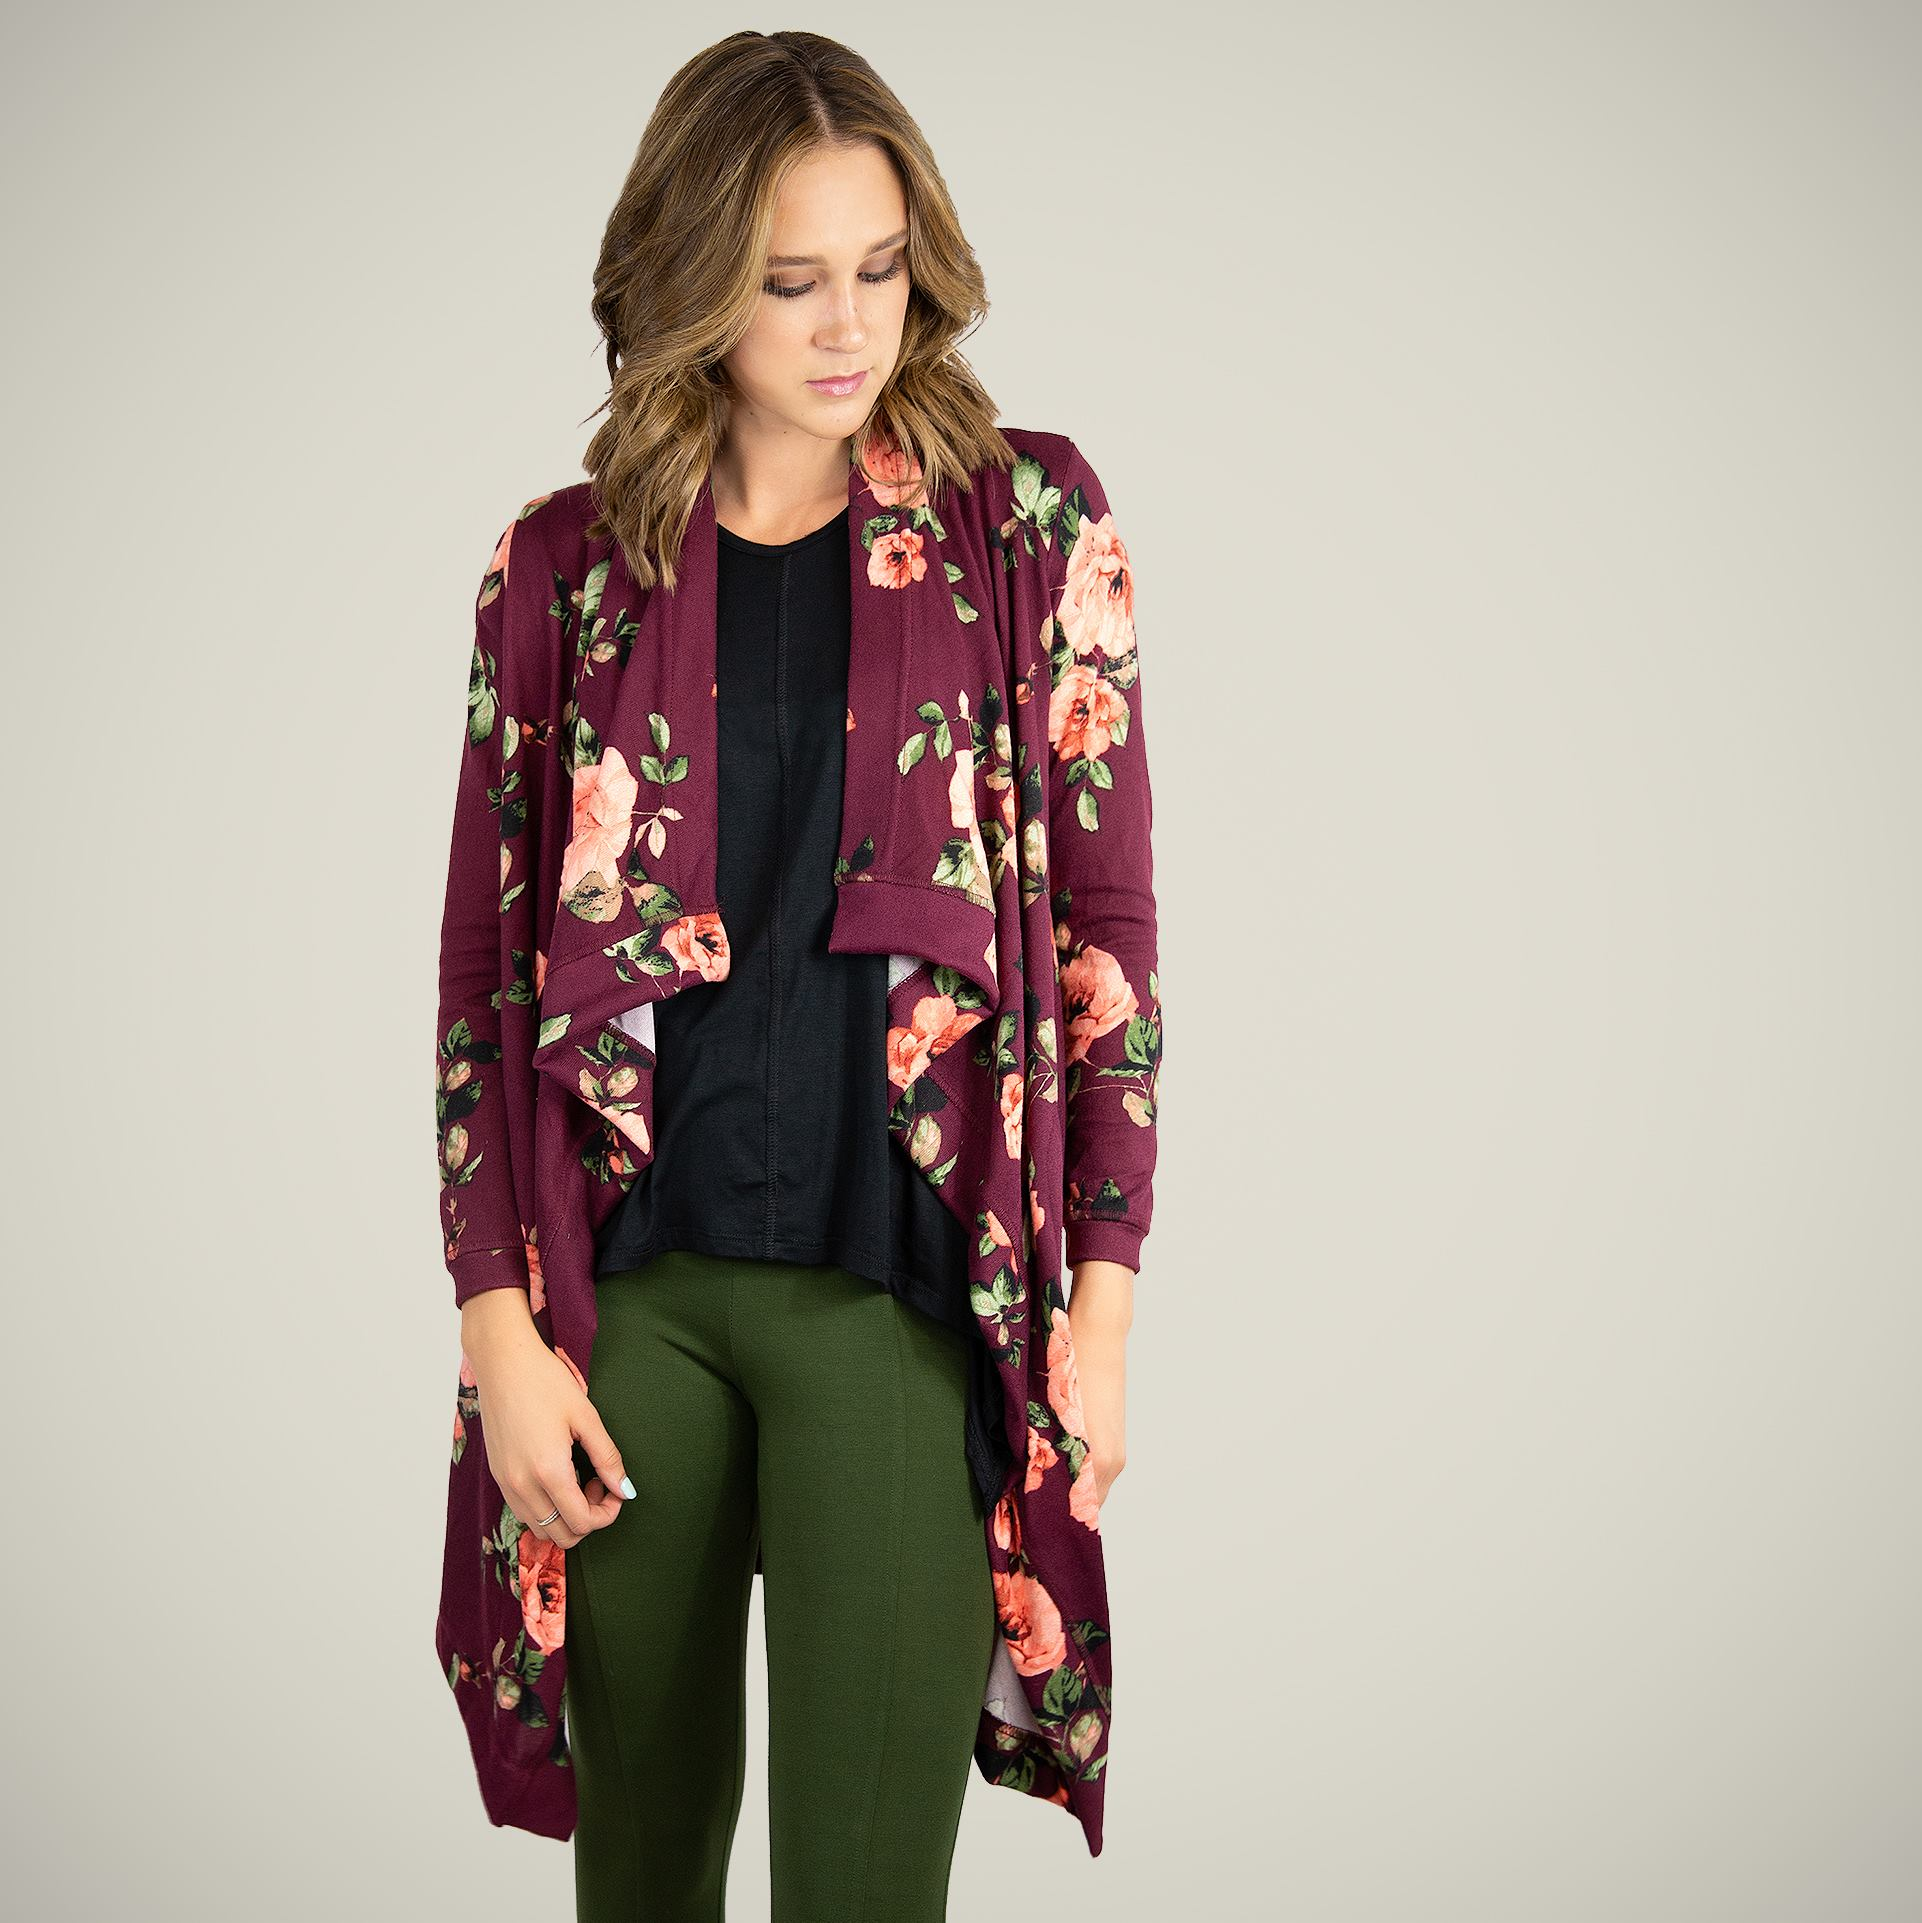 comfortable-chaos-boutique - Dusty Miller - Maroon Floral - Layering